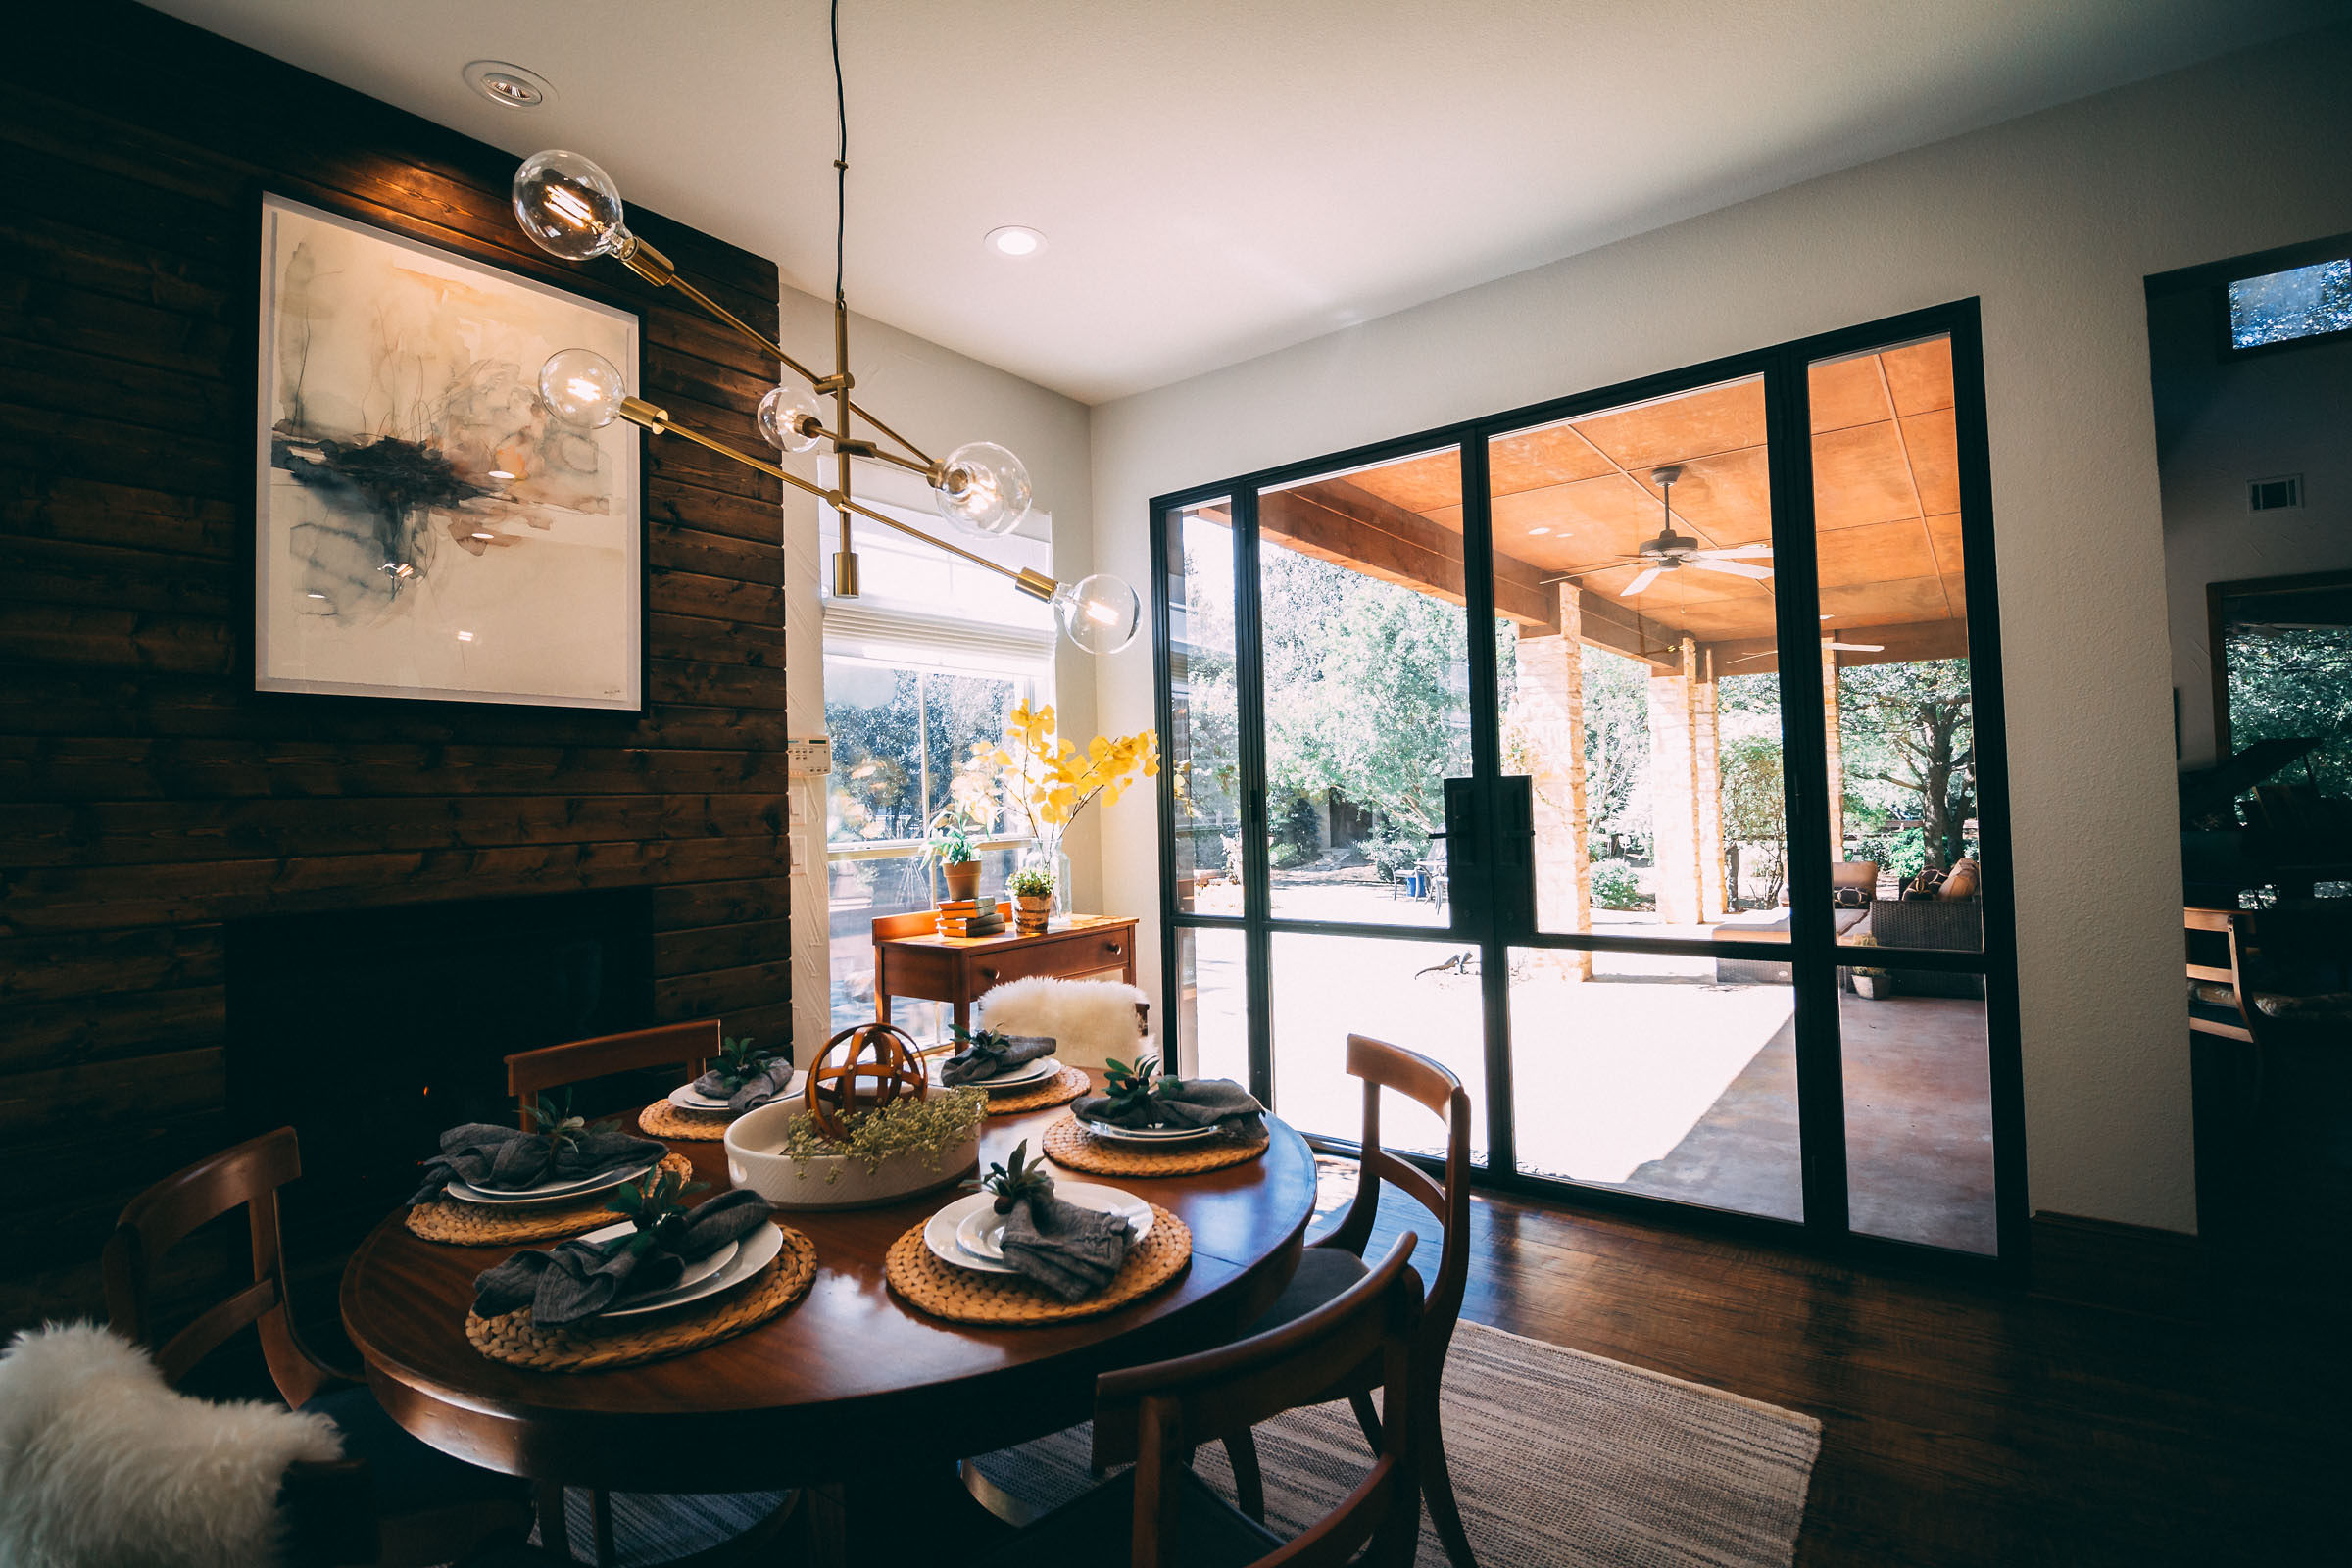 Picture of a breakfast nook, table set, big doors onto patio, wood fireplace, exposed light bulb chandelier.